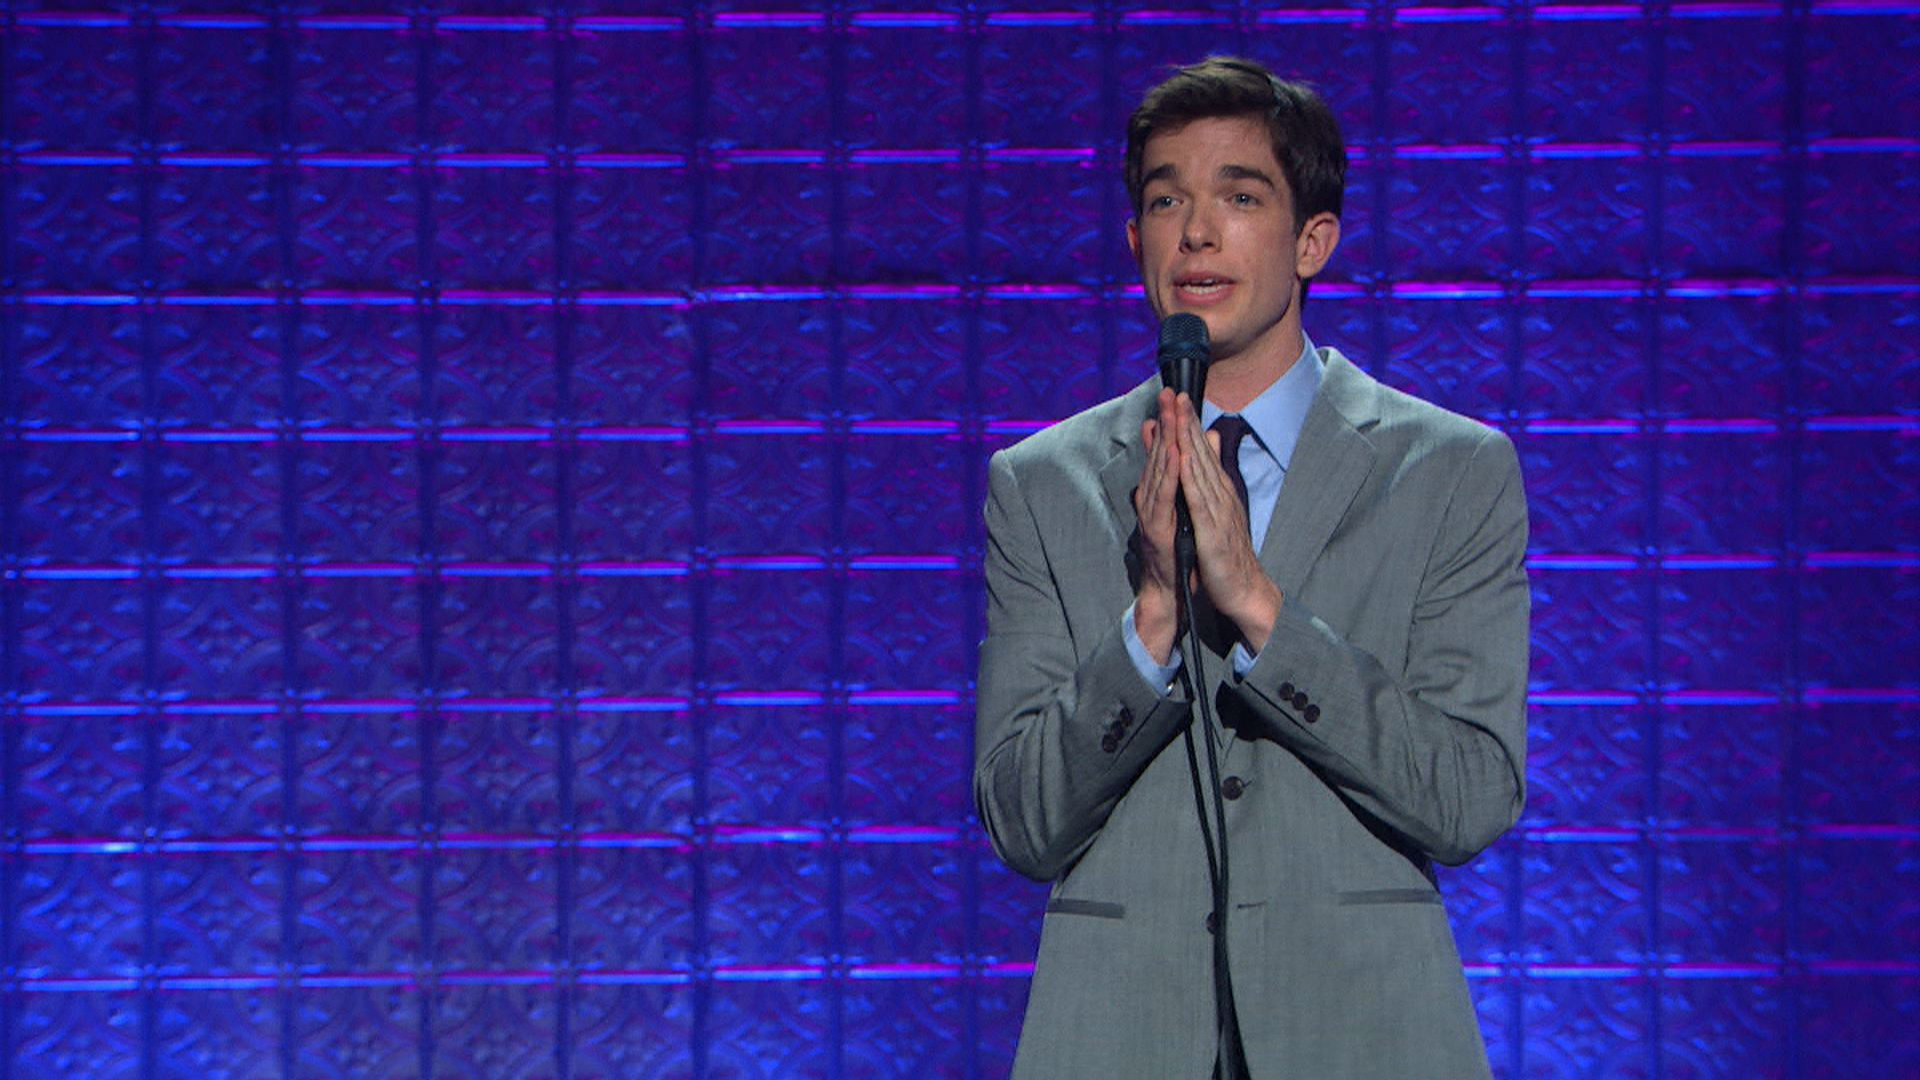 John Mulaney - Bullied at School